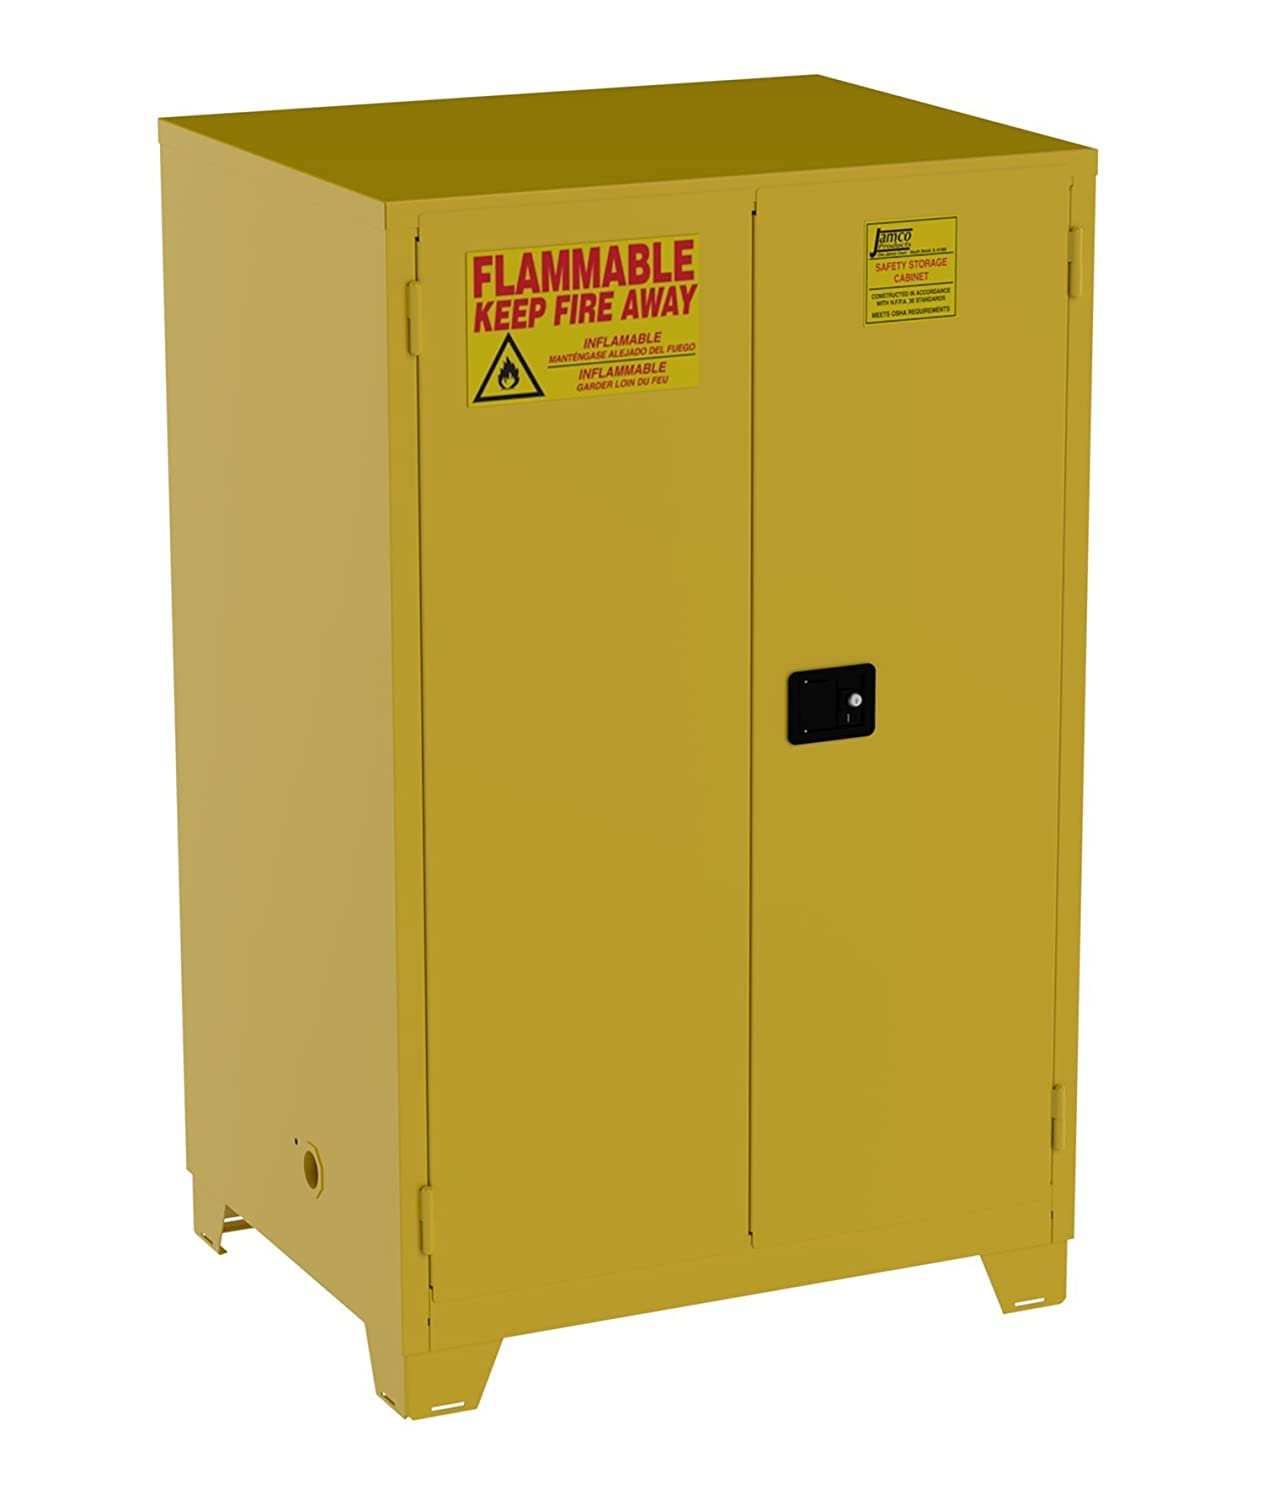 Jamco Products Inc FM90 YP Safety Flammable Cabinet, Two Door, Manual  Close, 43 Inch X 34 Inch X 69 Inch   Tool Cabinets   Amazon.com